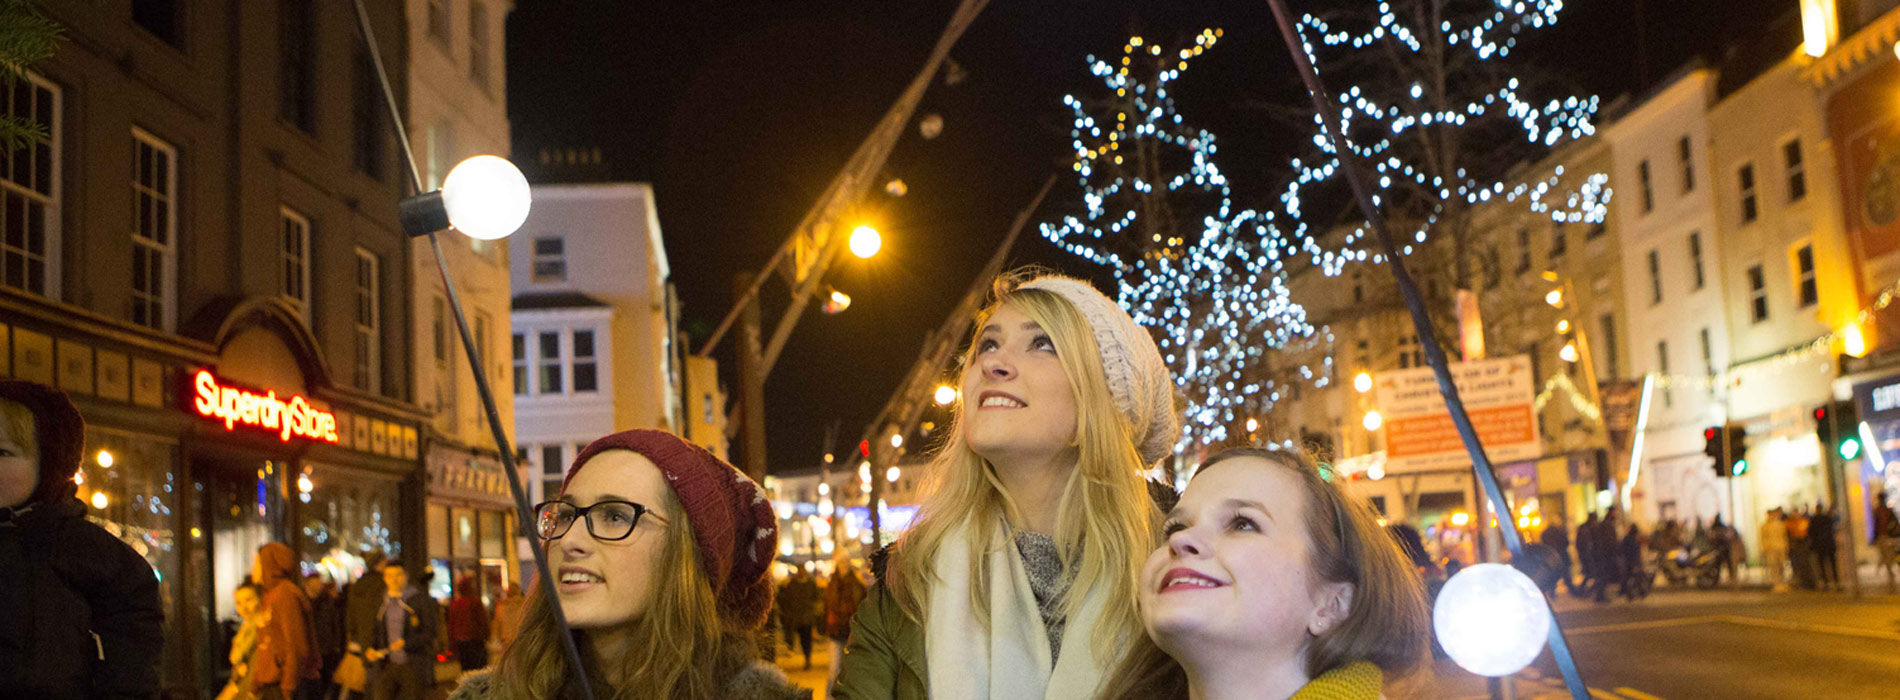 Cork City switches on it's Christmas Lights on November 18th at 6pm. See more here summary image